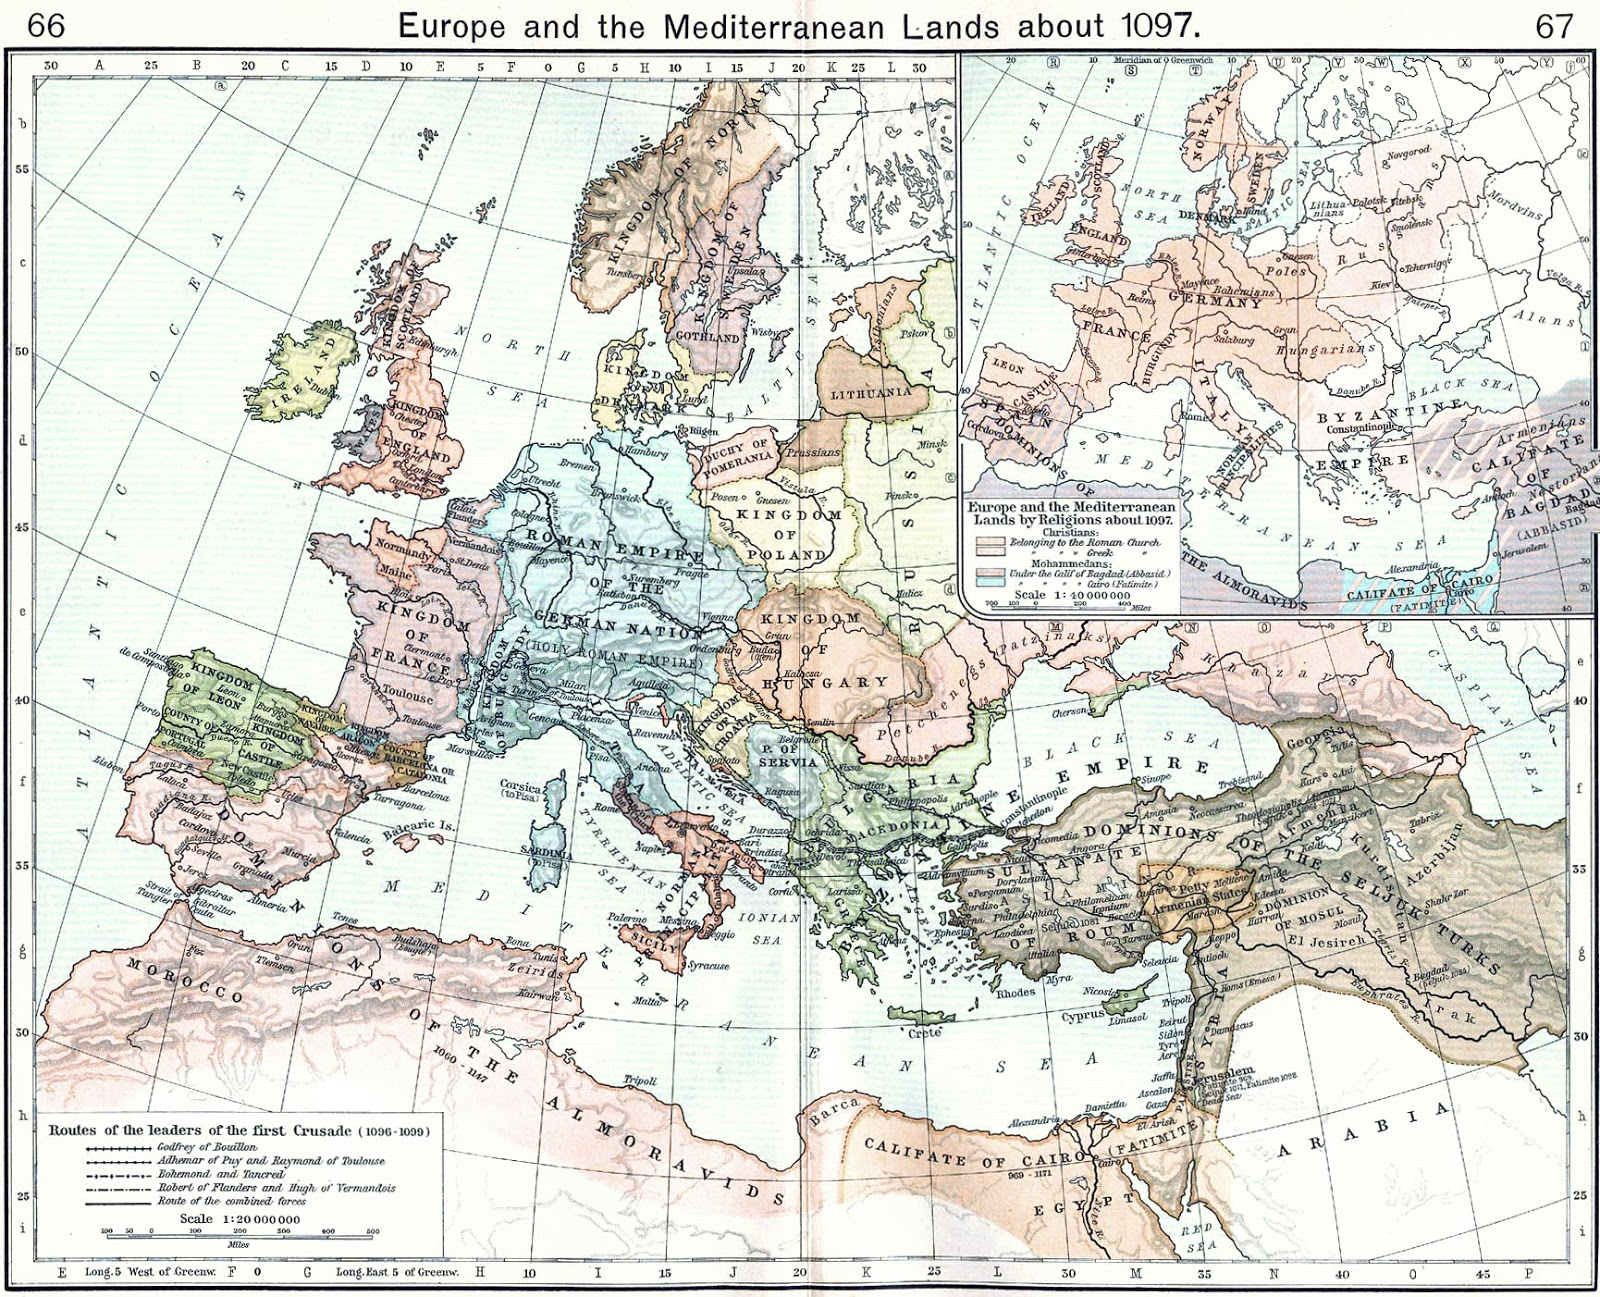 Europe and the Miditerranean lands about 1097